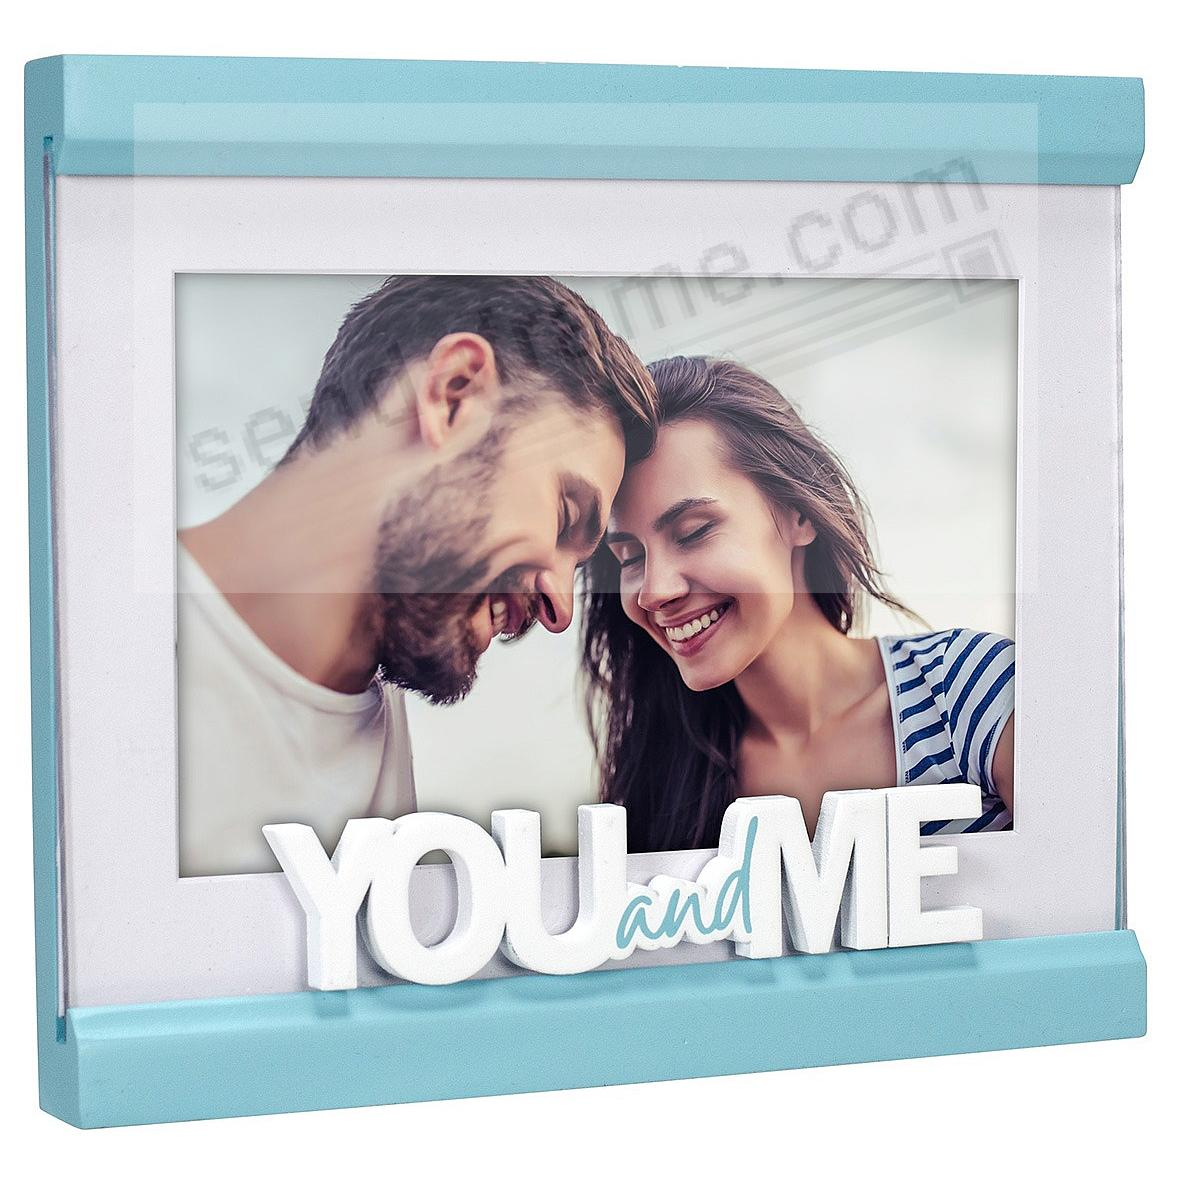 YOU and ME 7x5/6x4 SHELF EXPRESSIONS Frame Captures a special moment together